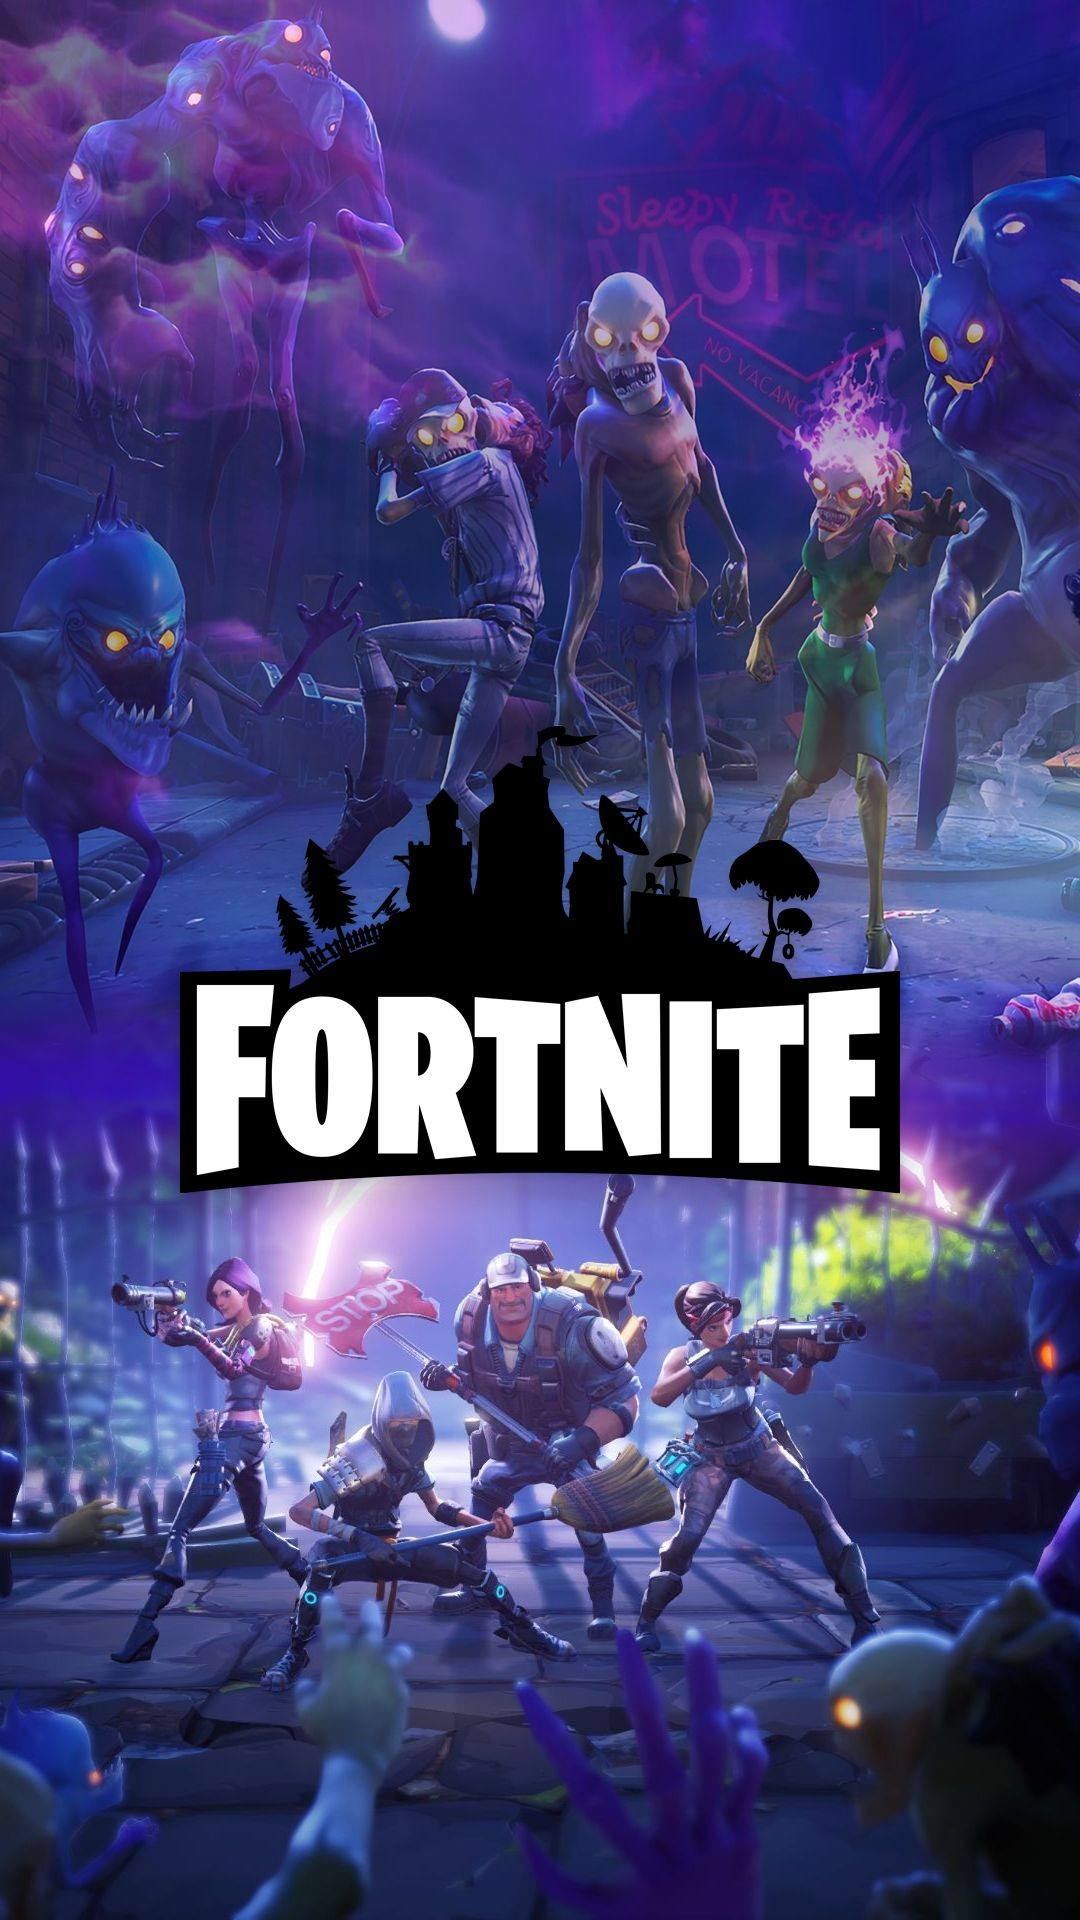 Fortnite Android Wallpaper   2020 Android Wallpapers 1080x1920